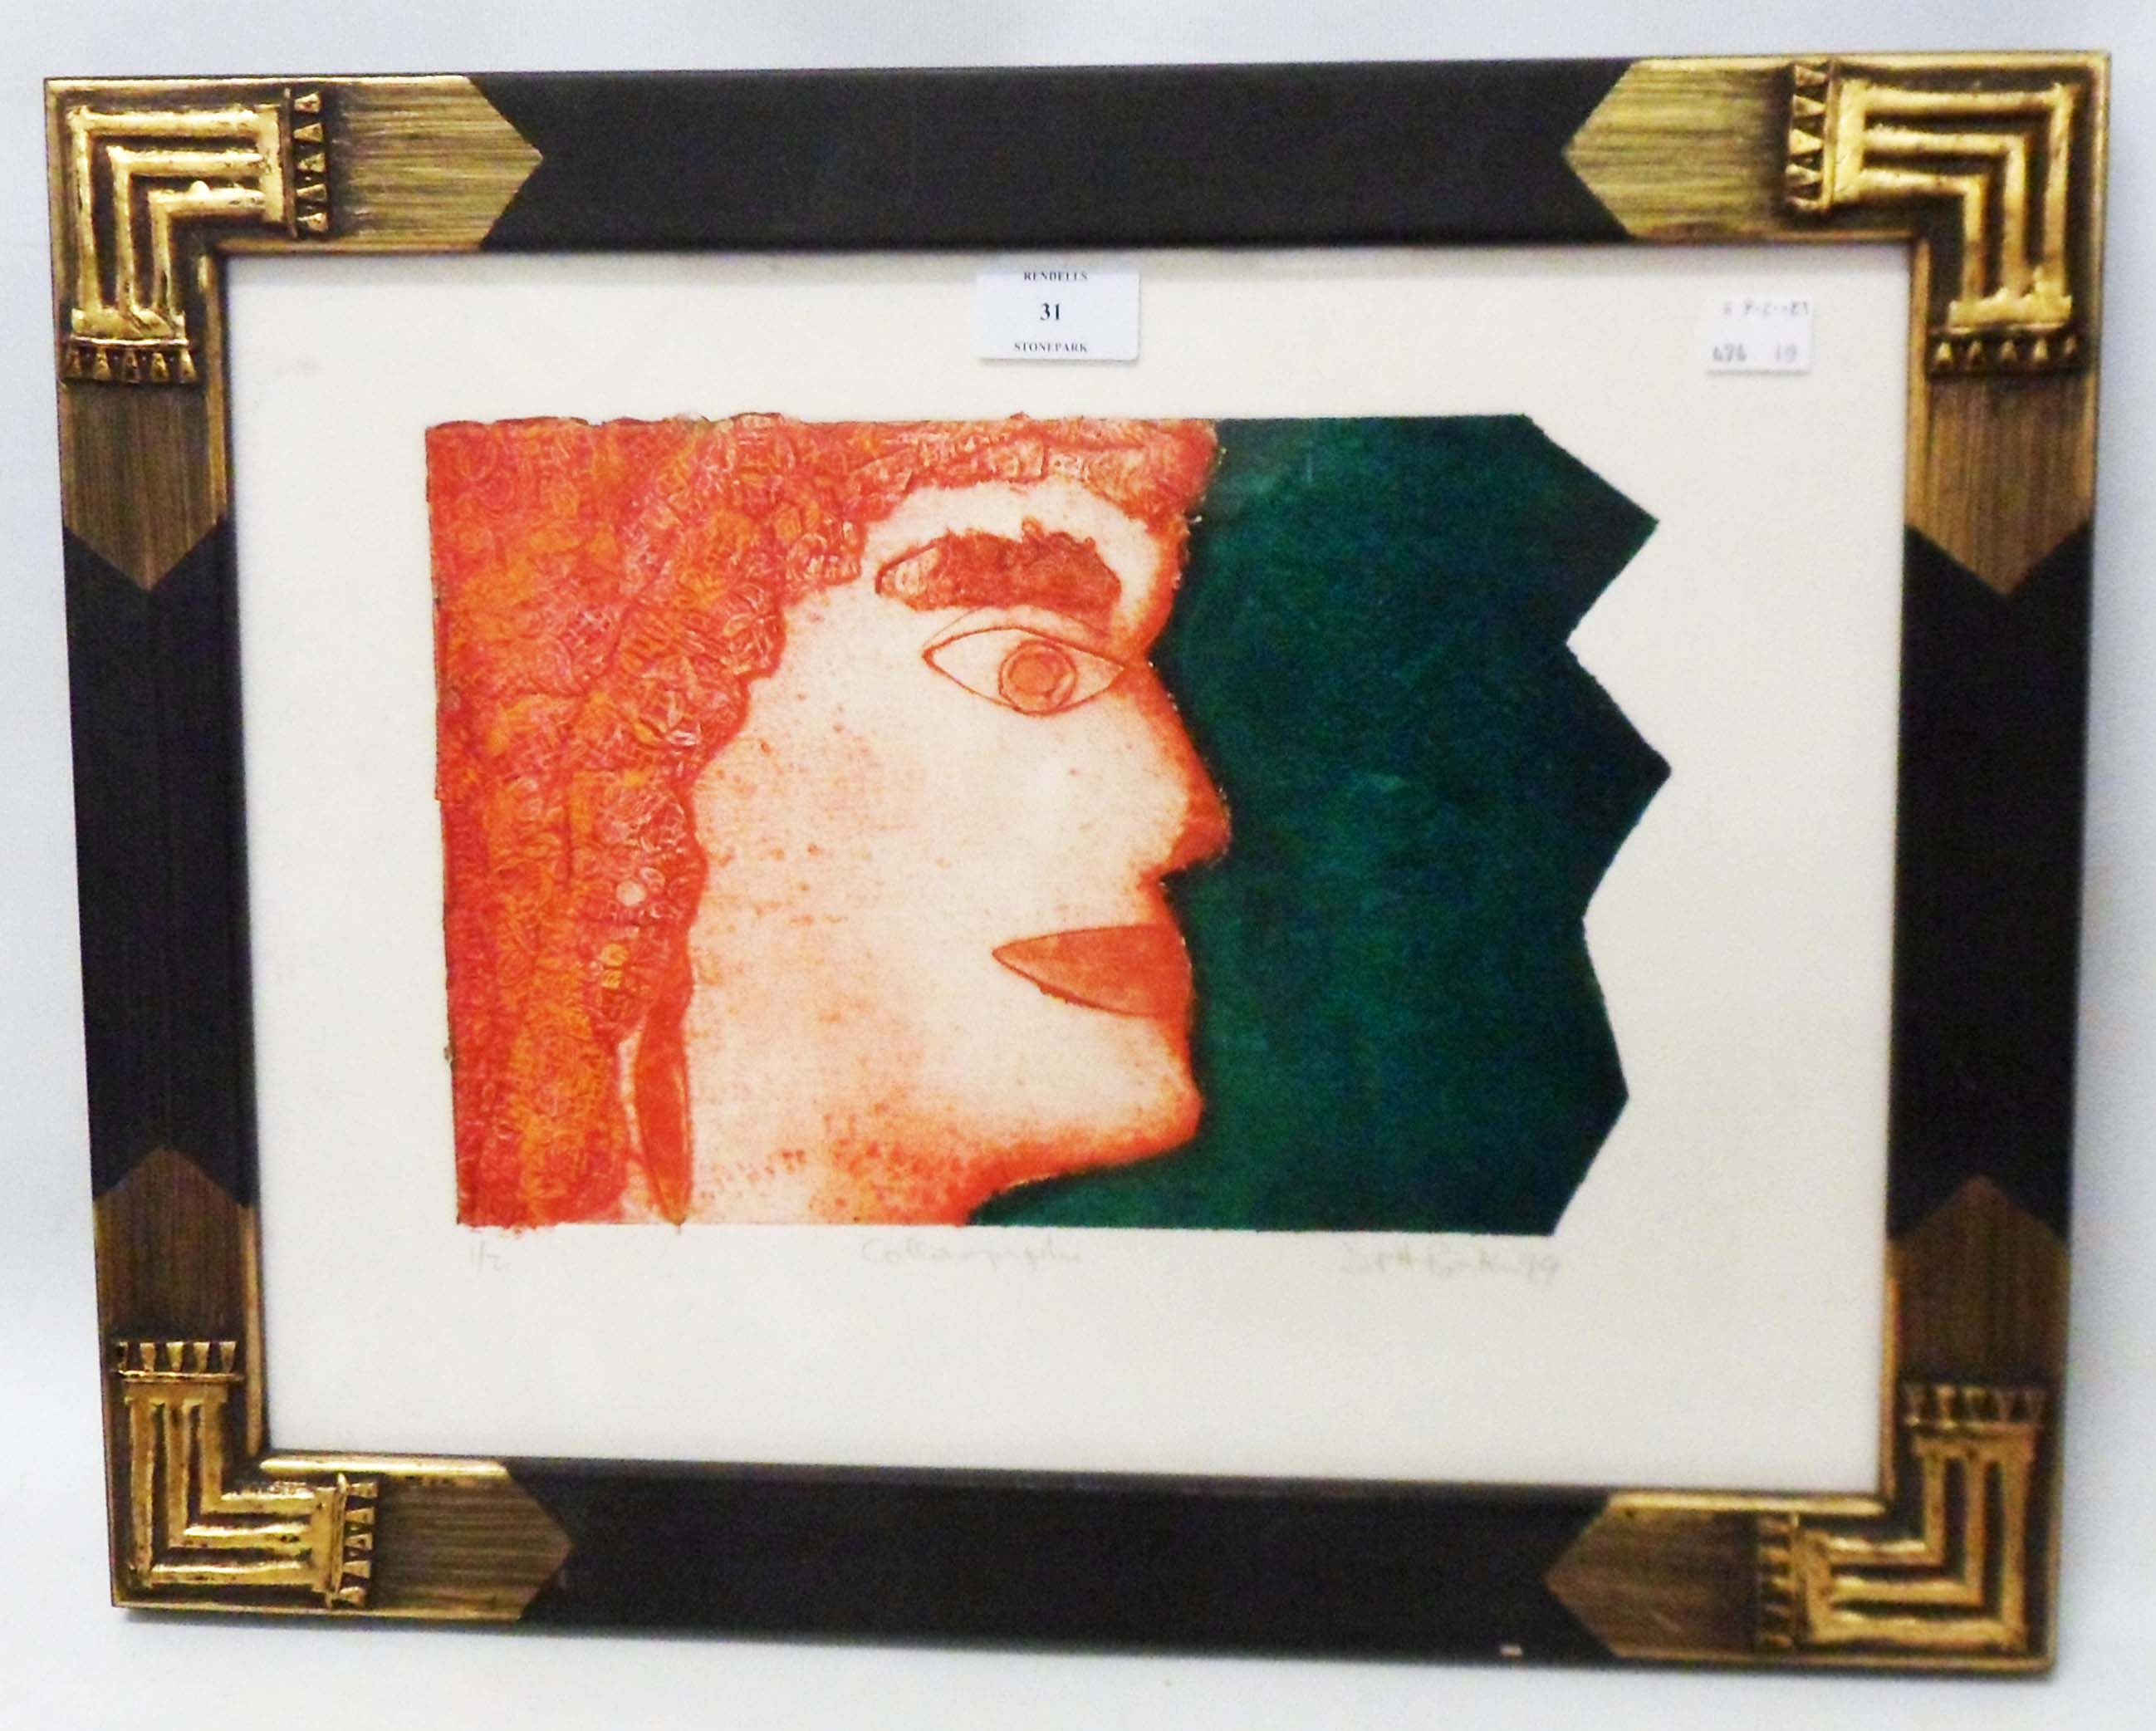 D. P. H. Baker: an ornate framed collagraph, depicting a head in profile - pencil signed and